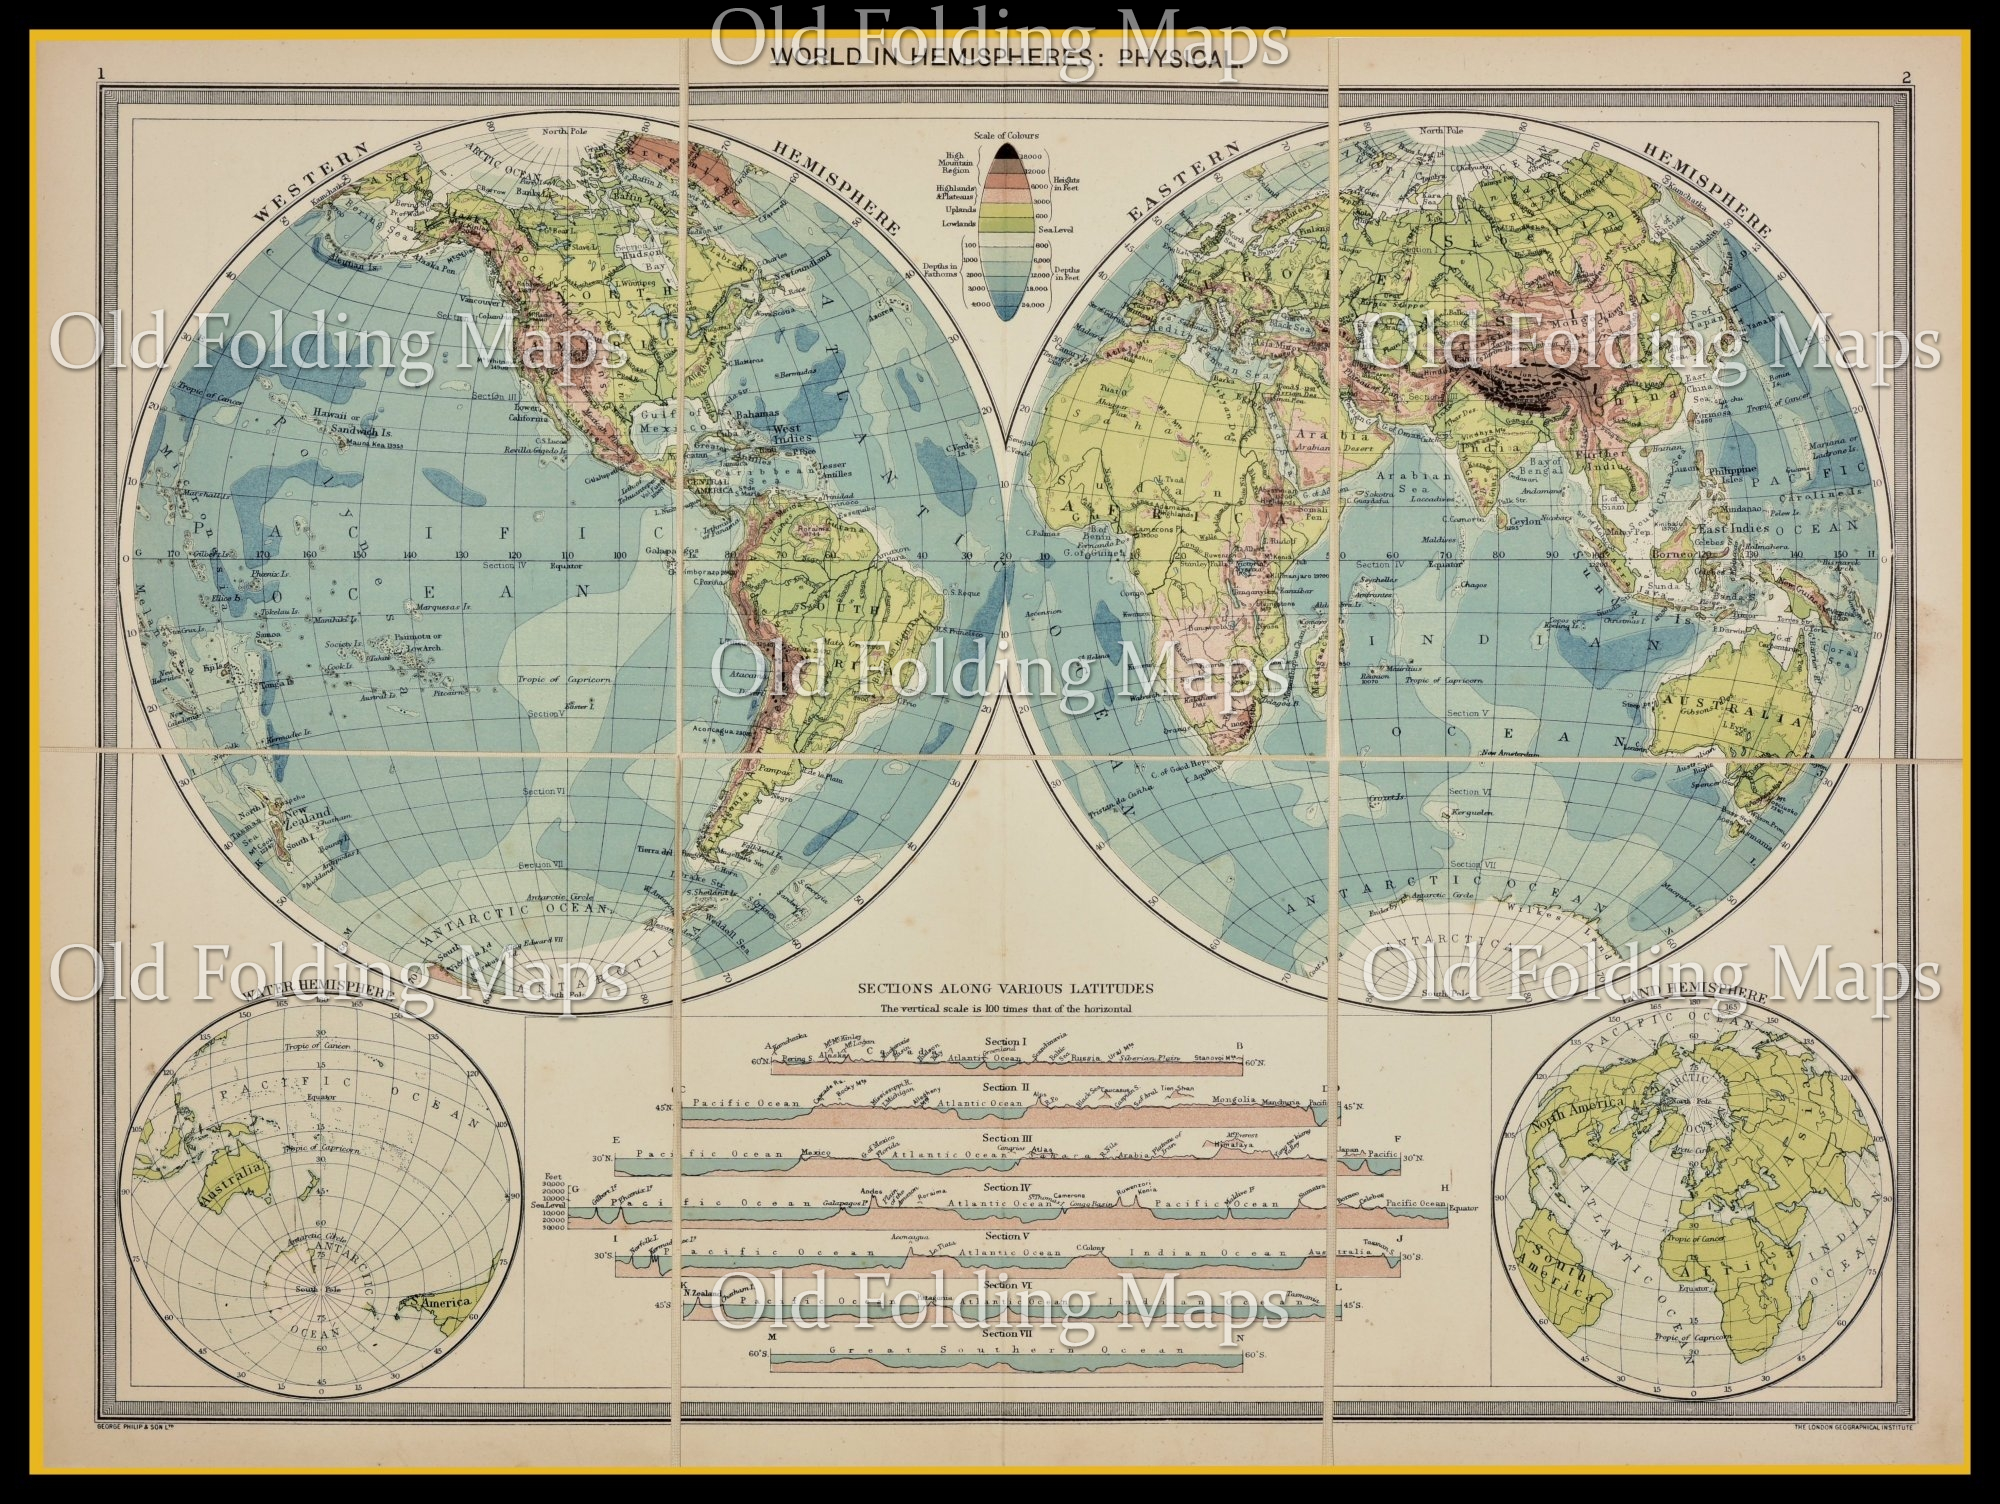 Old Map of The World in Hemispheres circa 1900